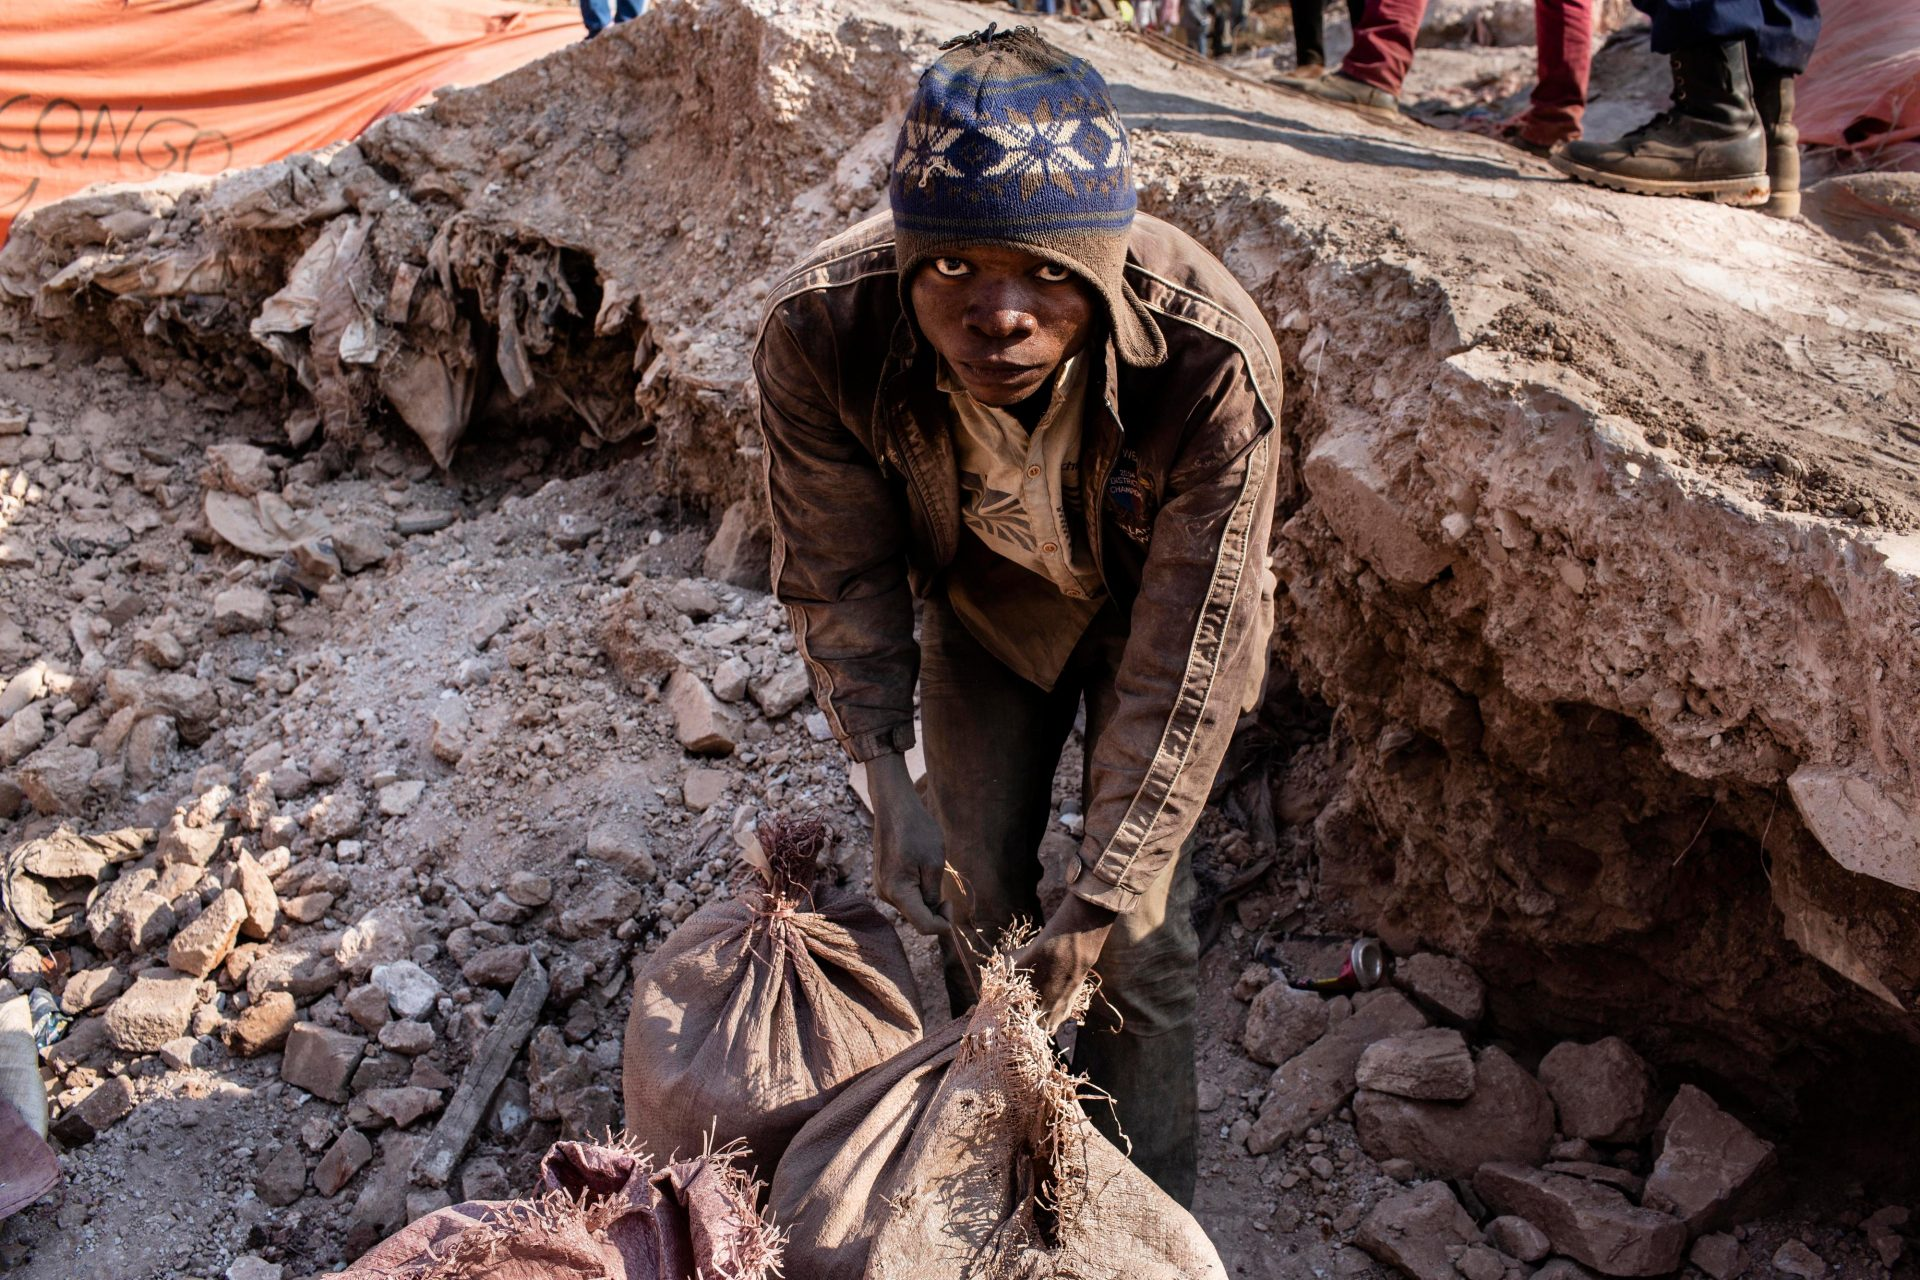 A young miner in Kolwezi, in the Democratic Republic of Congo, fastens bags of cobalt, a vital component in many modern electrical devices. Photo: Sebastian Meyer/ Corbis via Getty Images